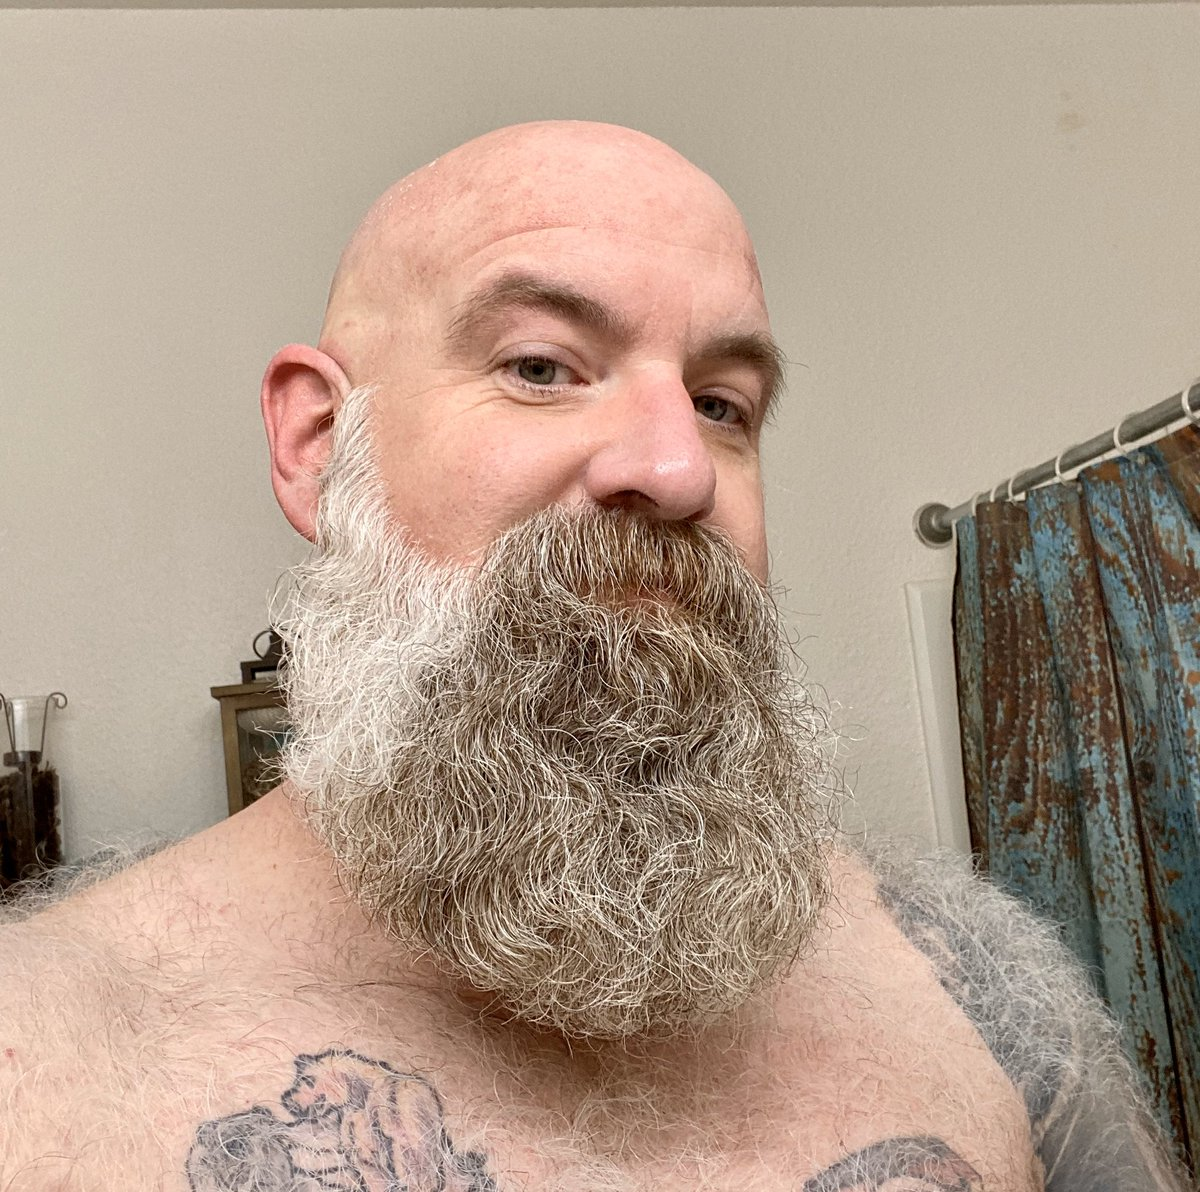 I had an appointment at Fuzzy Nates then the virus happened. I don't know how much longer I can wait to get some of this off of my face.  I won't go no beard but I might end up with the shortest beard you've seen me with in quite a while.  Maybe. #beard #bear #fur #quarantinelifepic.twitter.com/wNNvGmInbv